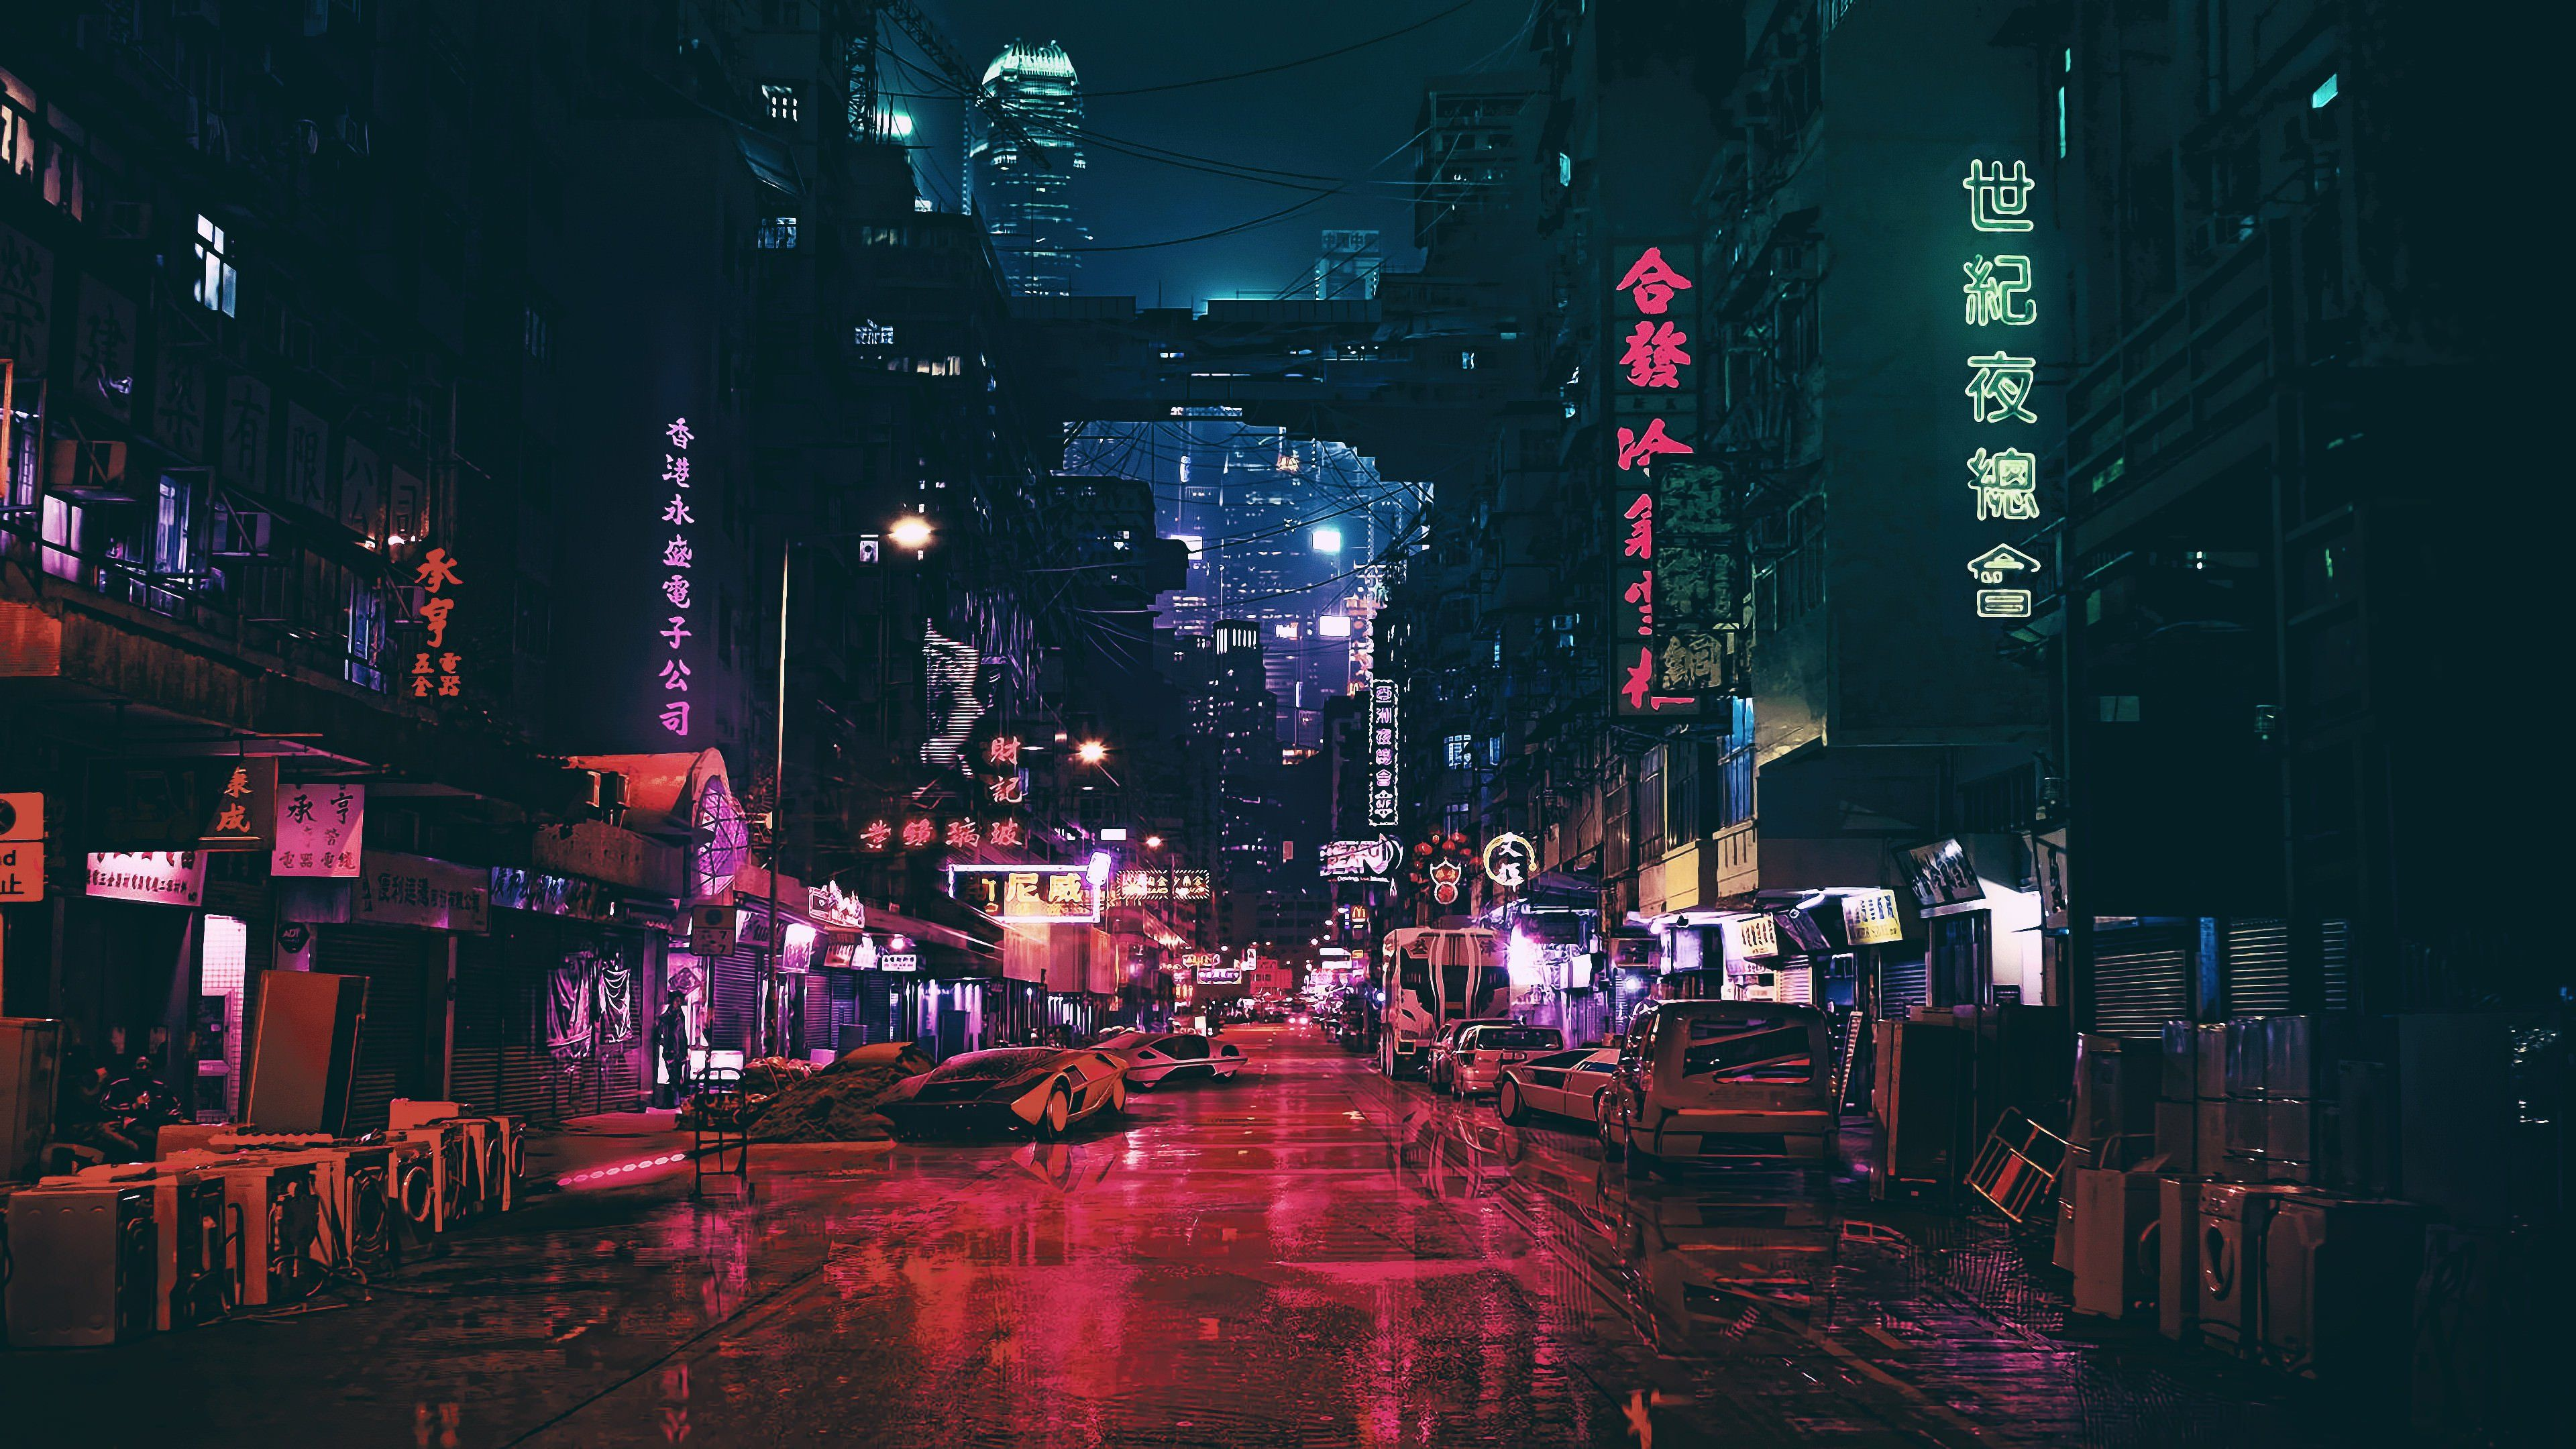 Cyber Punk 4k Wallpaper City Wallpaper Futuristic City Cyberpunk City